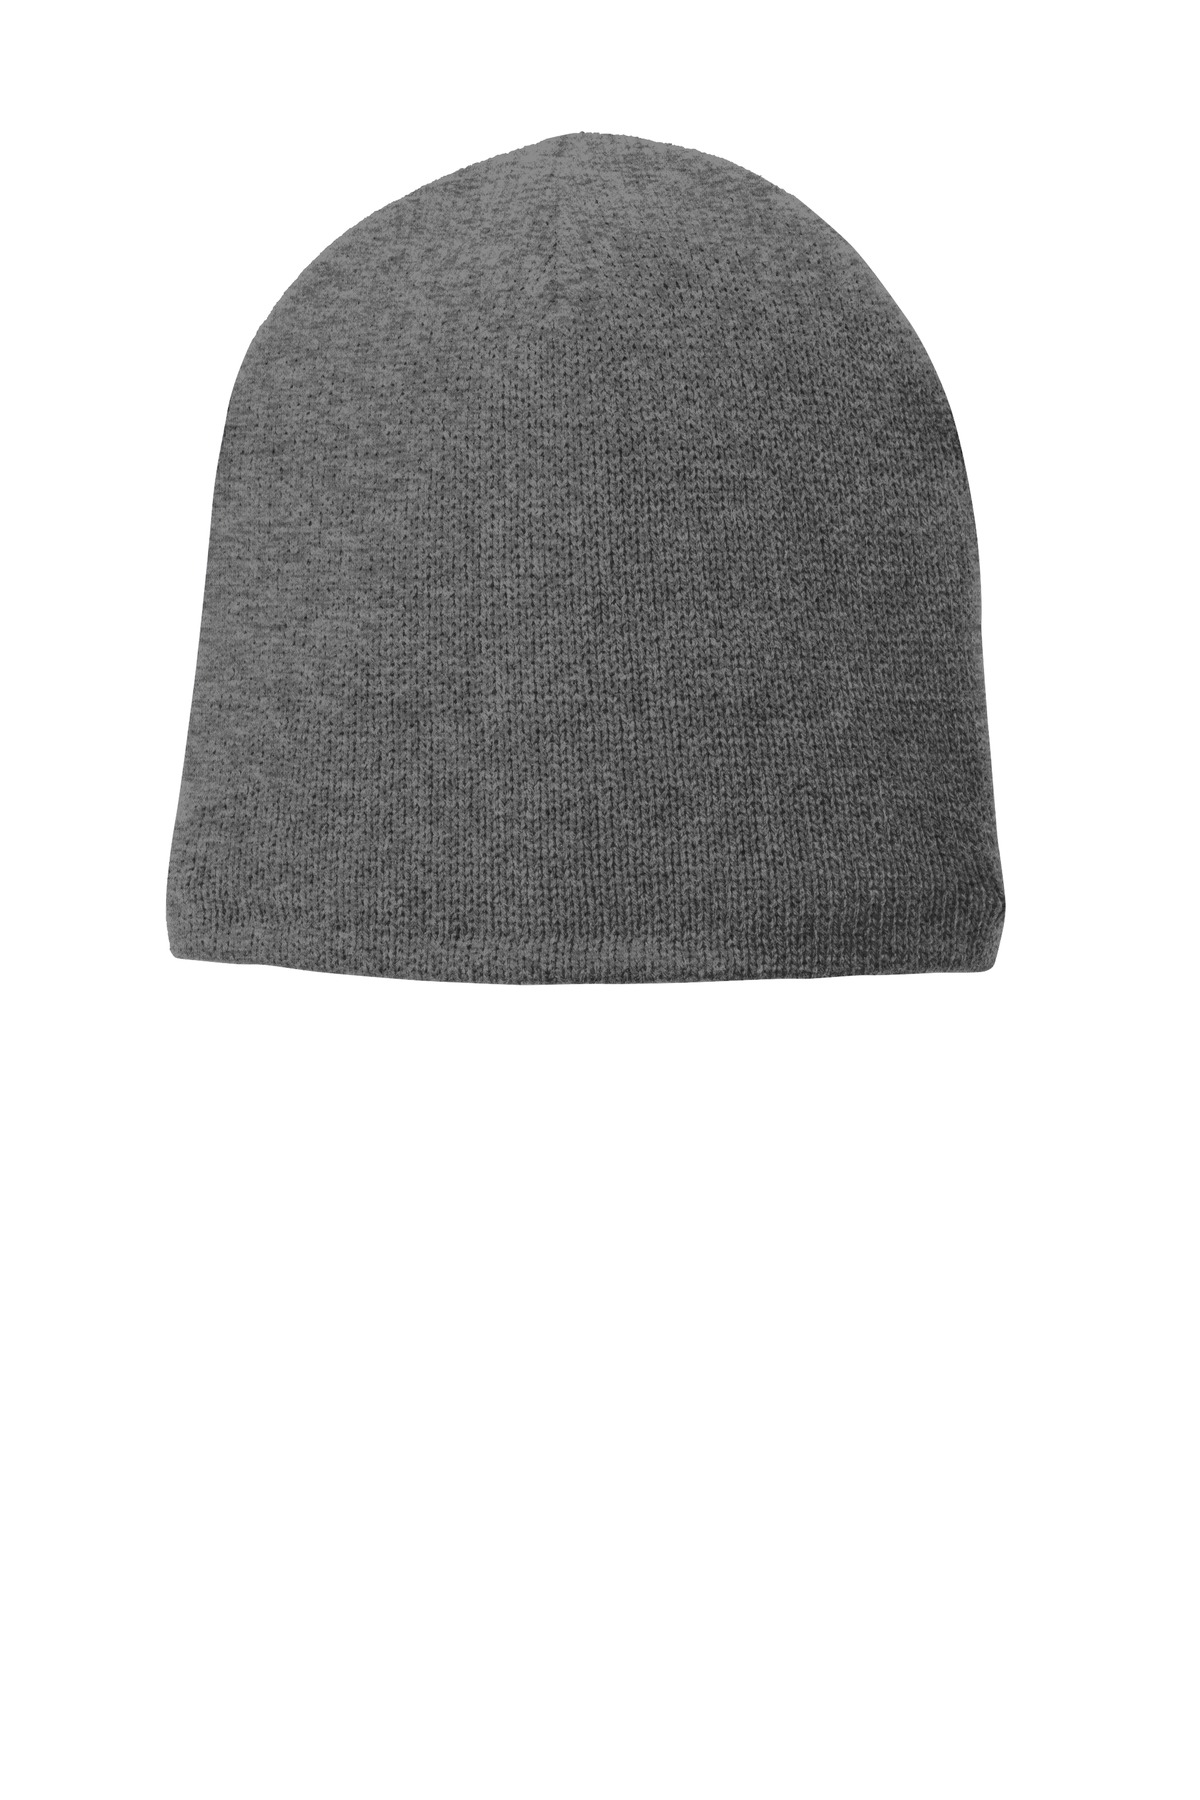 Port & Company  CP91L - Fleece-Lined Beanie Cap